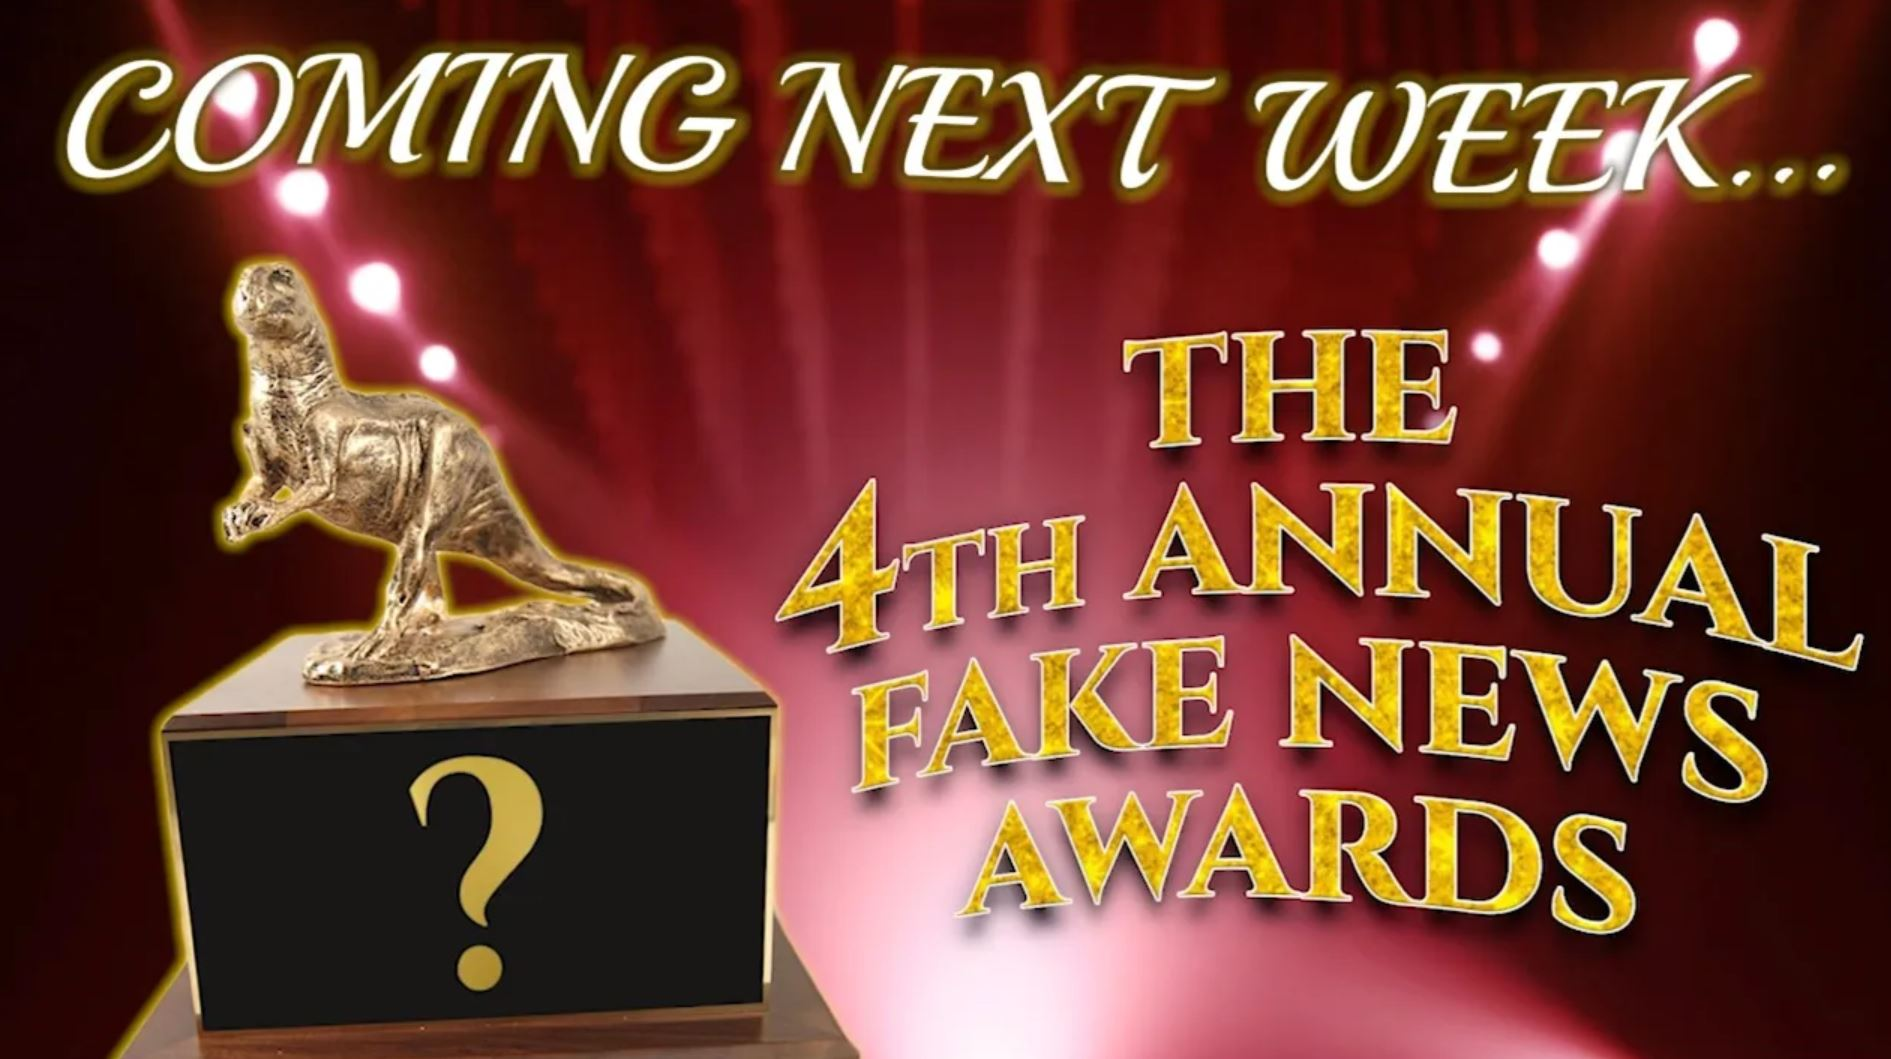 Announcing the 4th Annual Fake News Awards